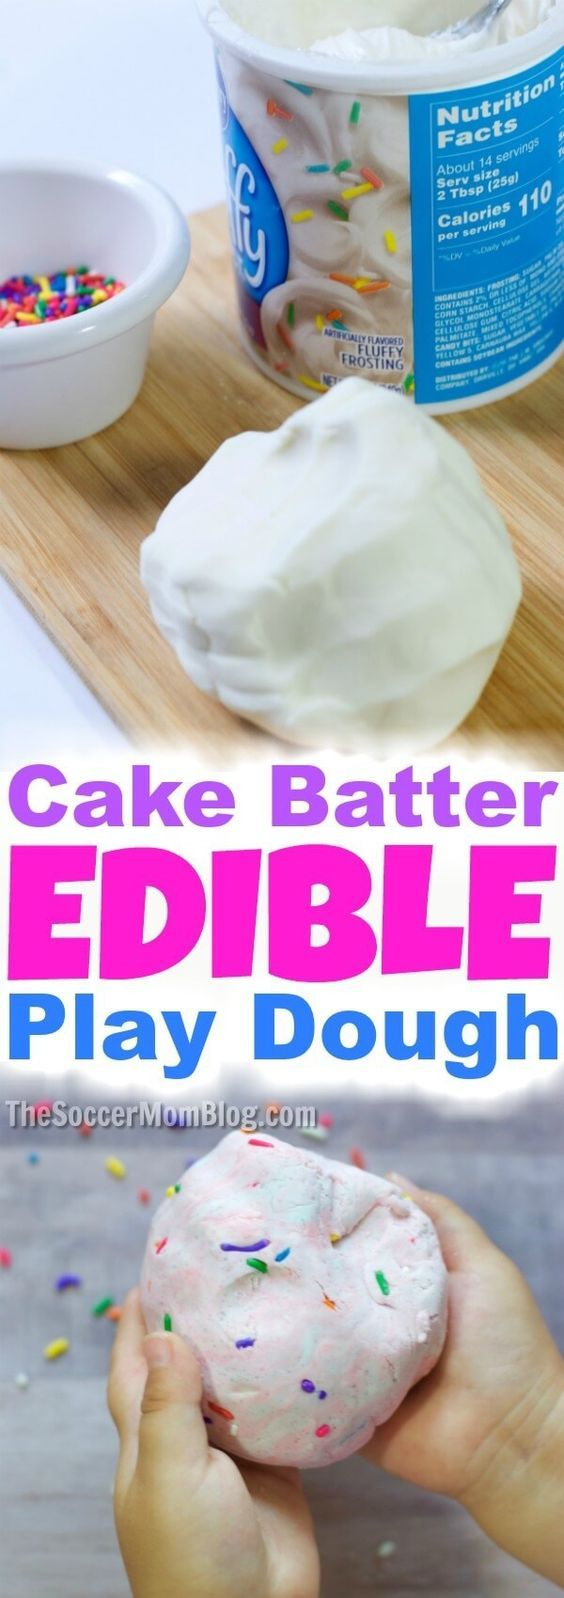 How to Make Edible Play Dough with Frosting